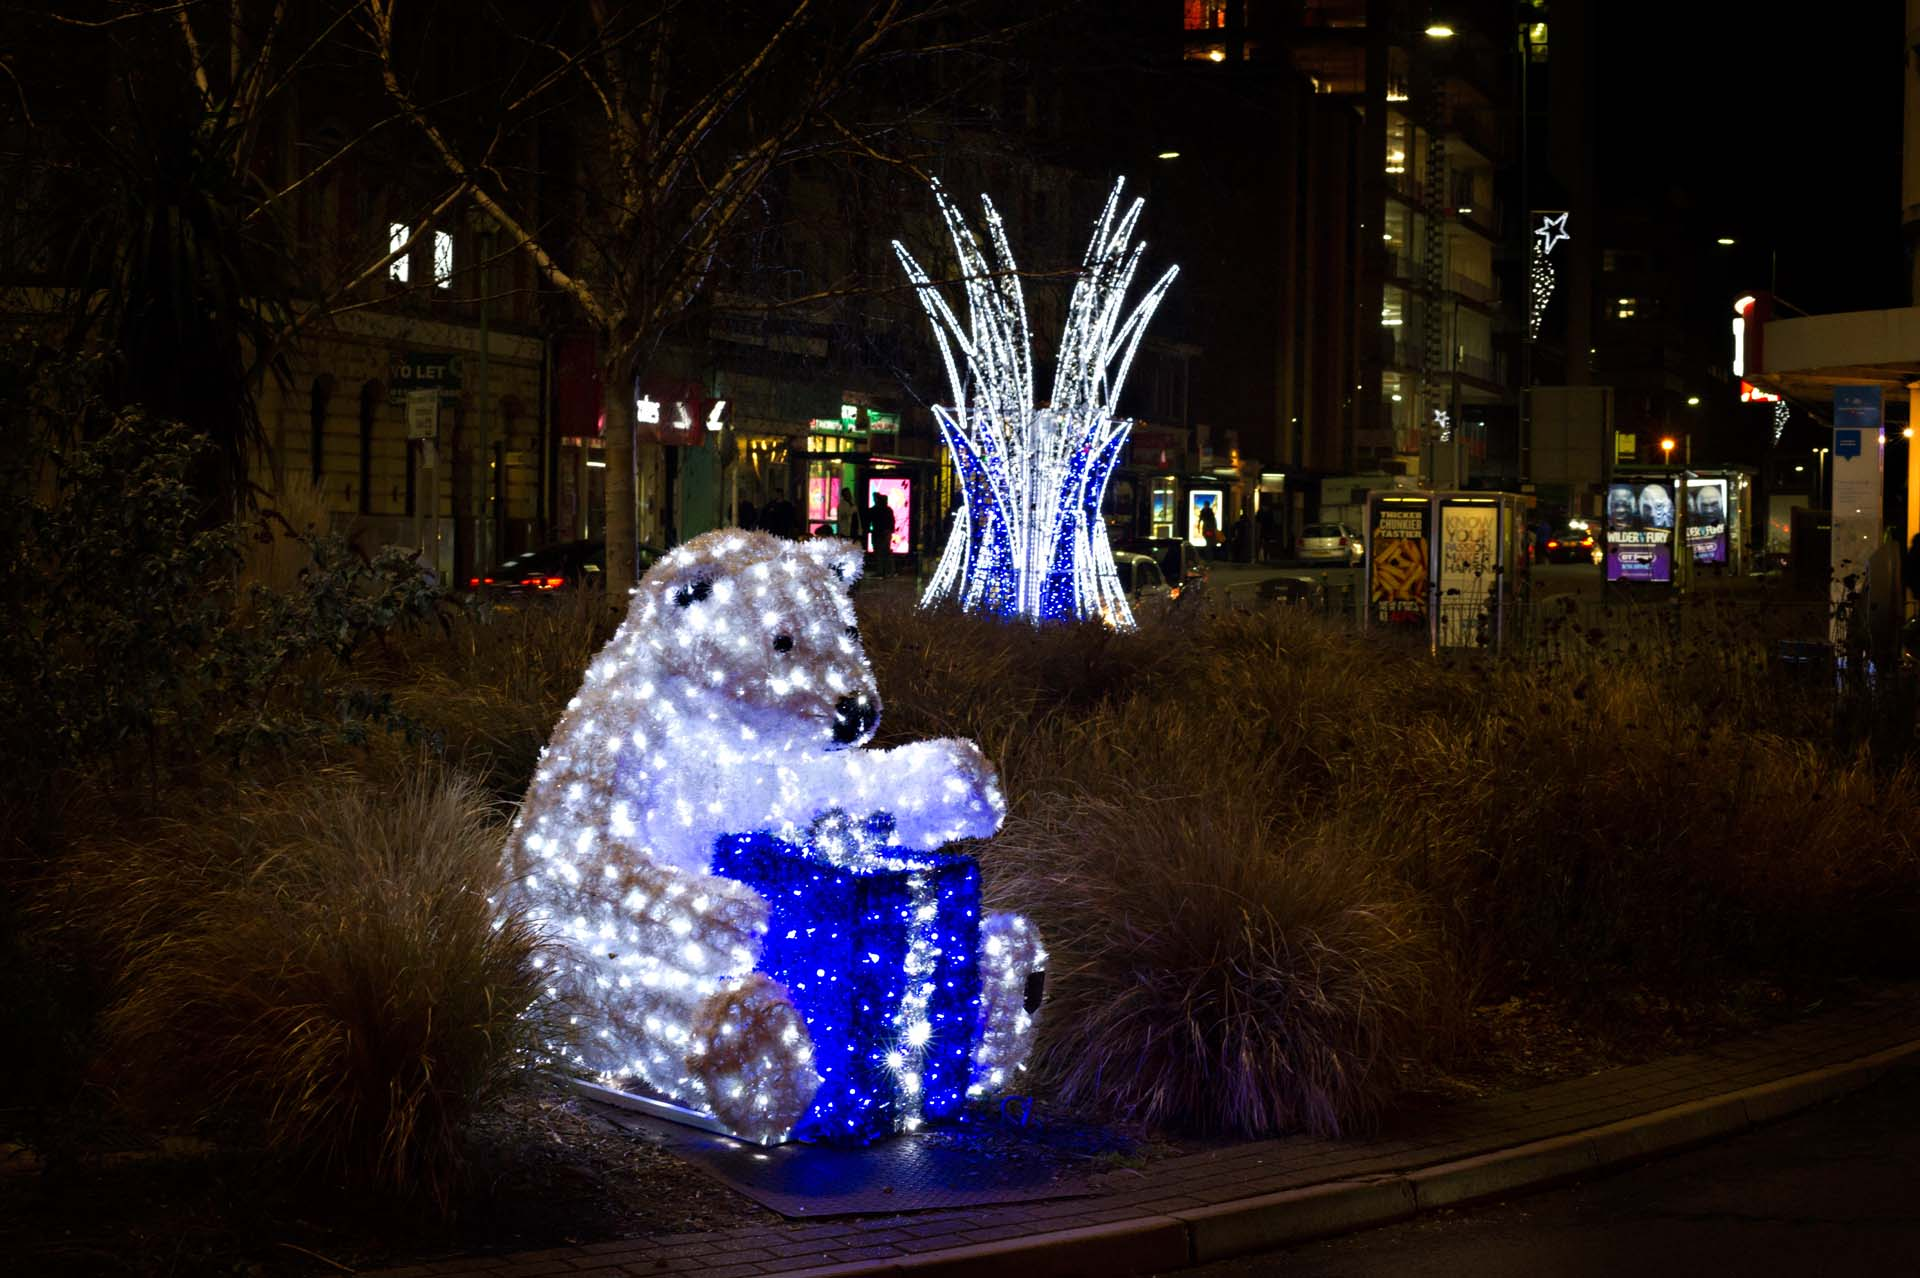 Polar Bear and Christmas lights in Bournemouth